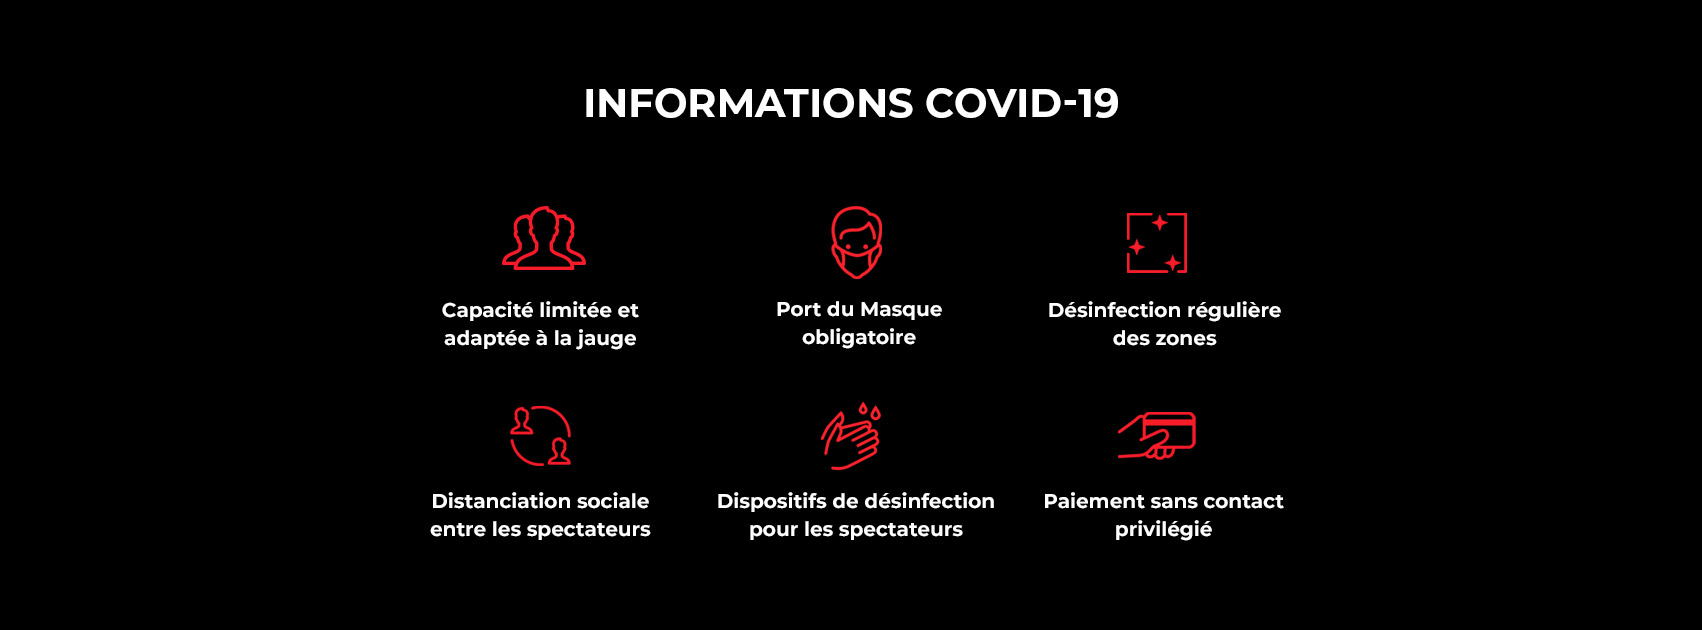 Contact Casino de Paris Coronavirus Covid19